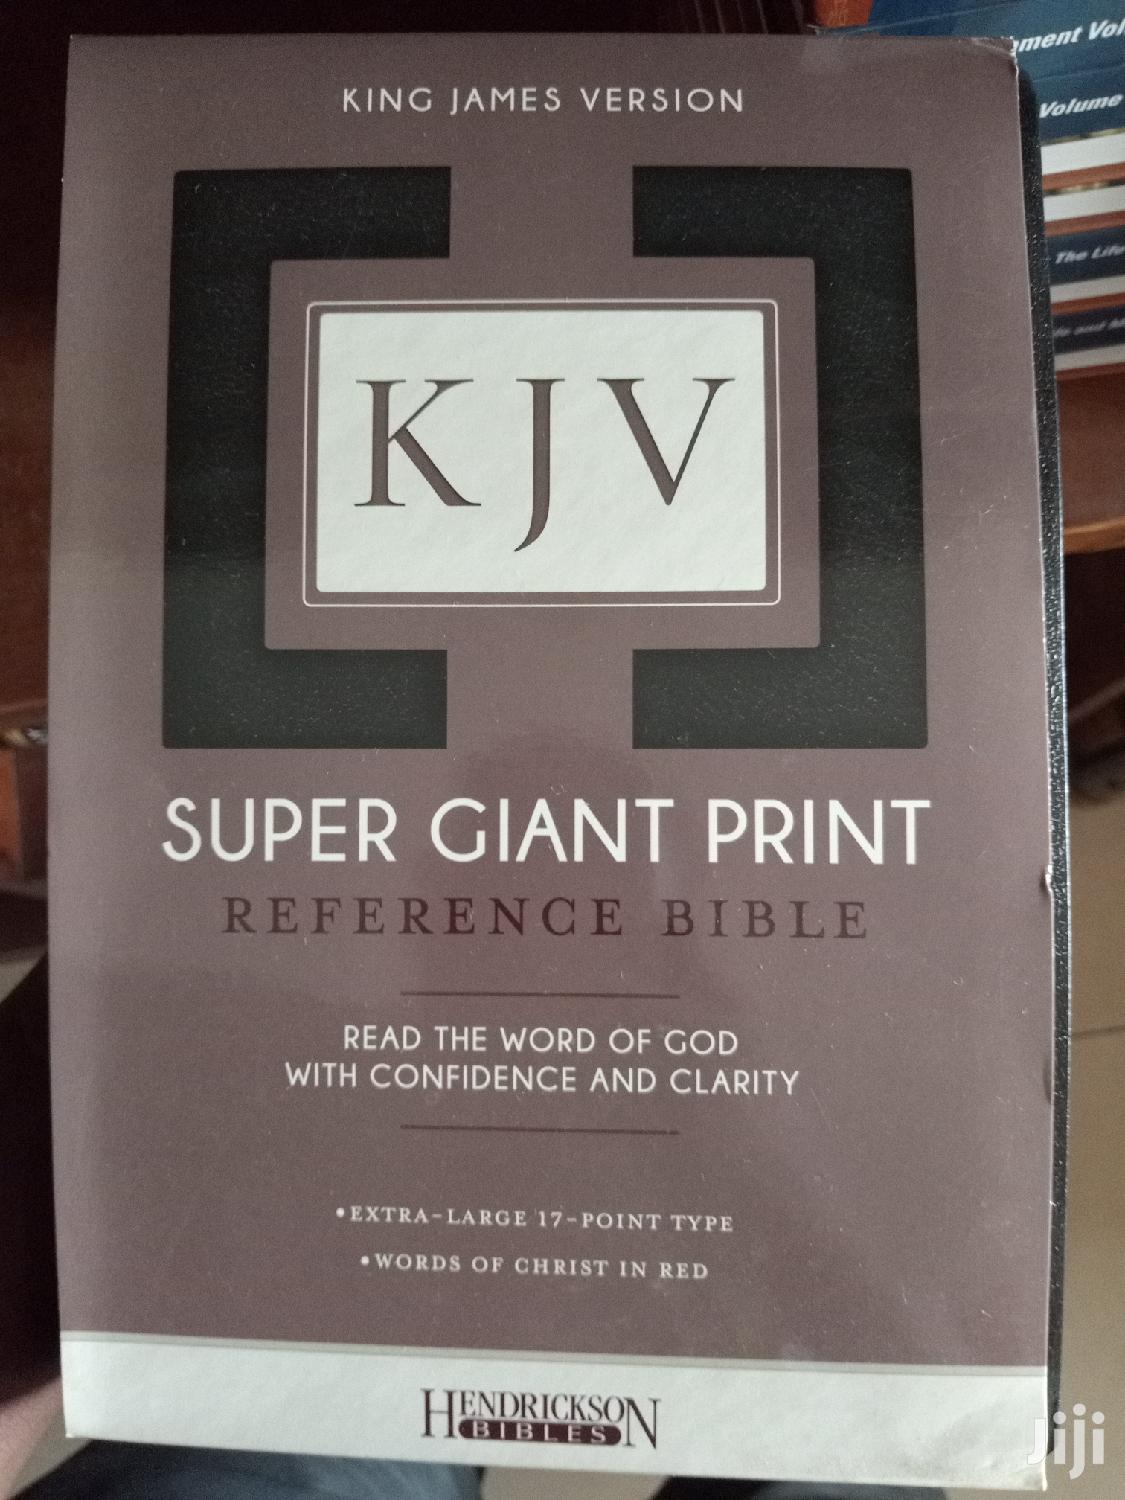 Holy Bible KJV (Super Giant Print)